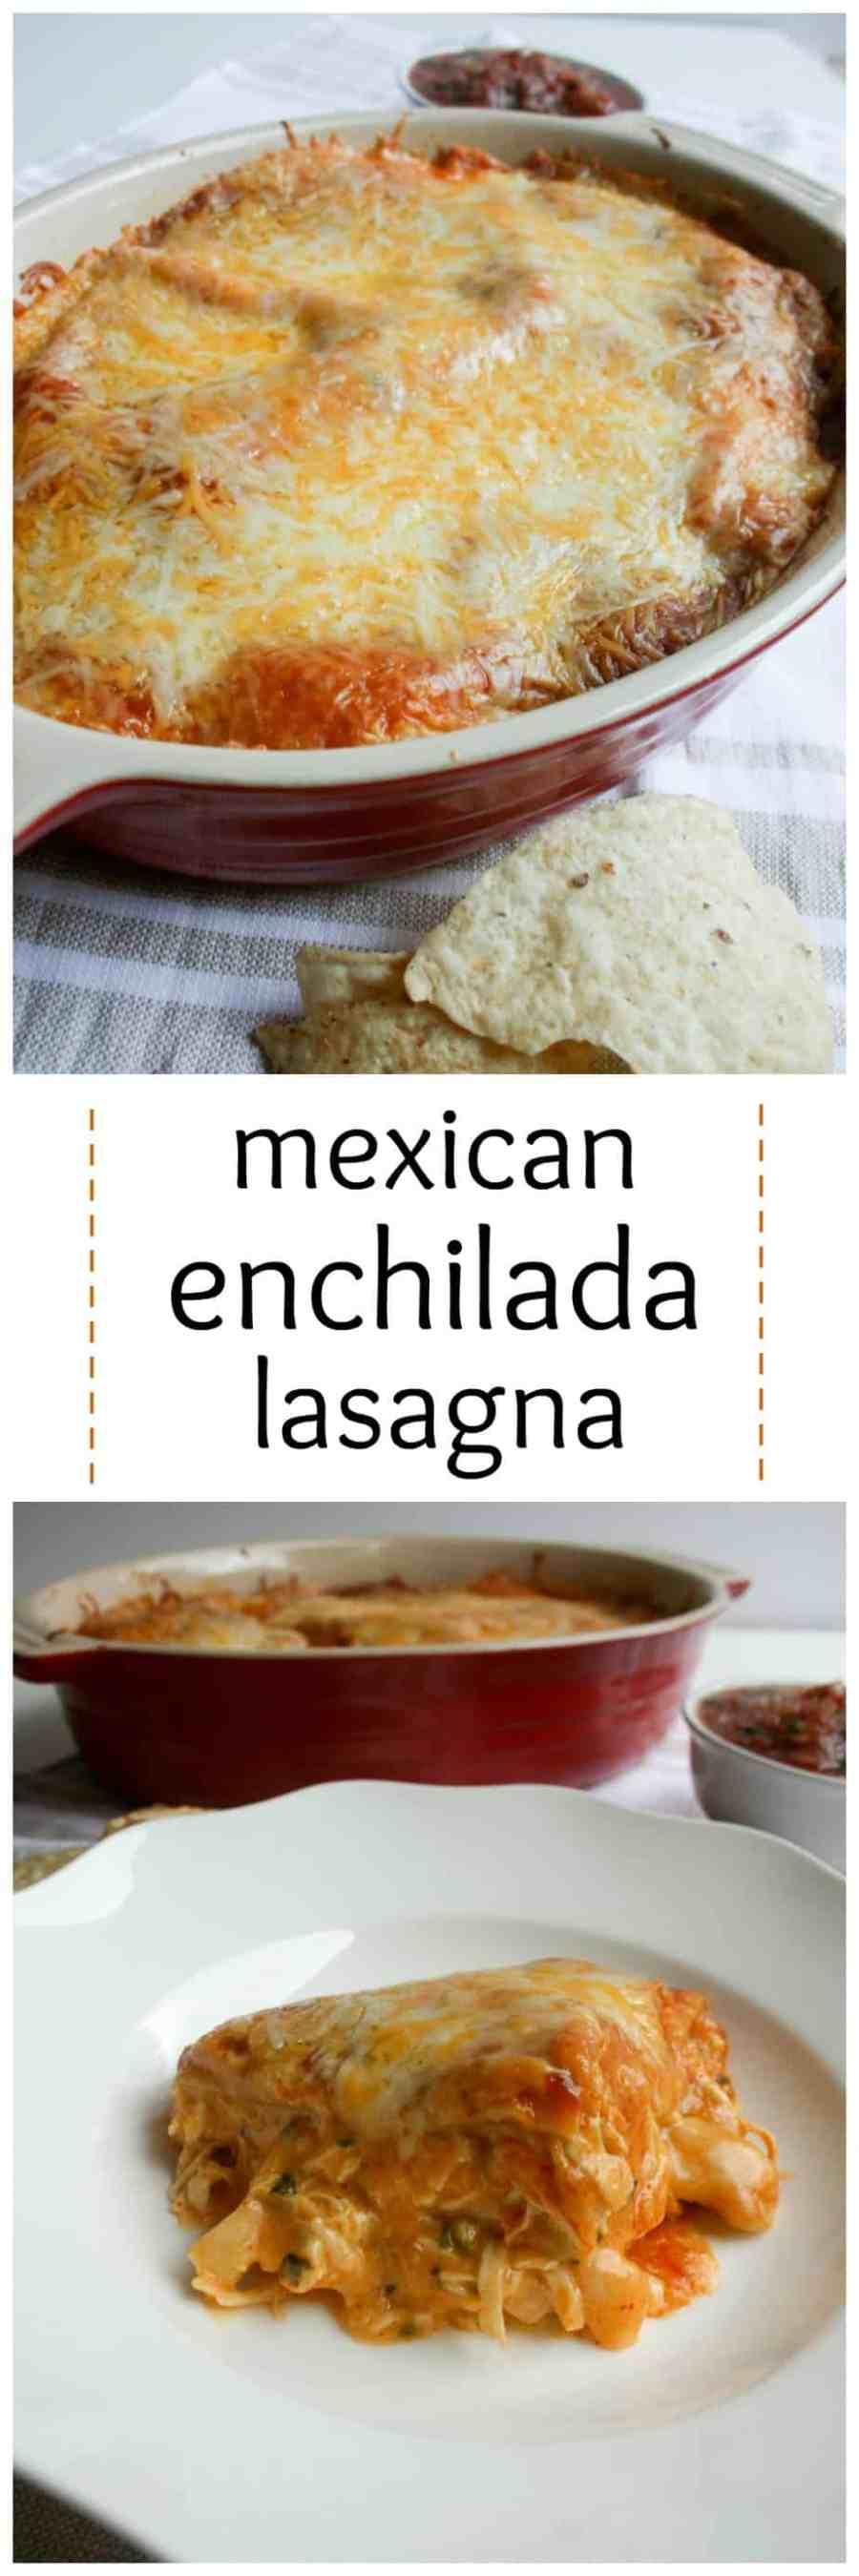 Enchilada Lasagnas are the perfect cross between Mexican and Italian dinners. There is nothing better, more family friendly or delicious as this everyday, busy weeknight casserole!